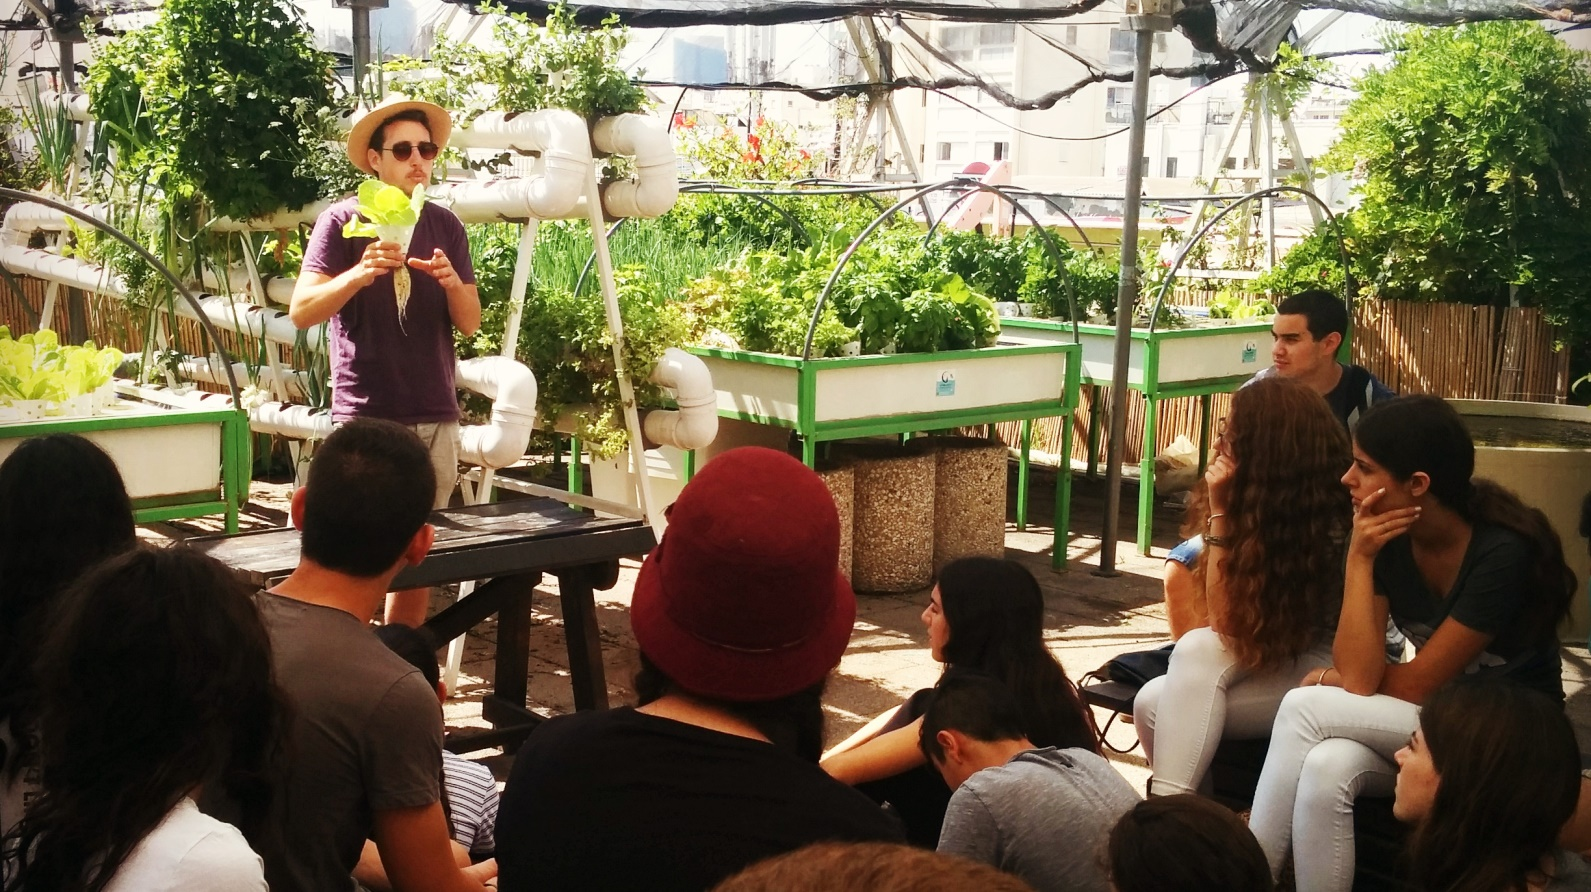 A gardening workshop at Green in the City. Photo by Mendi Falk